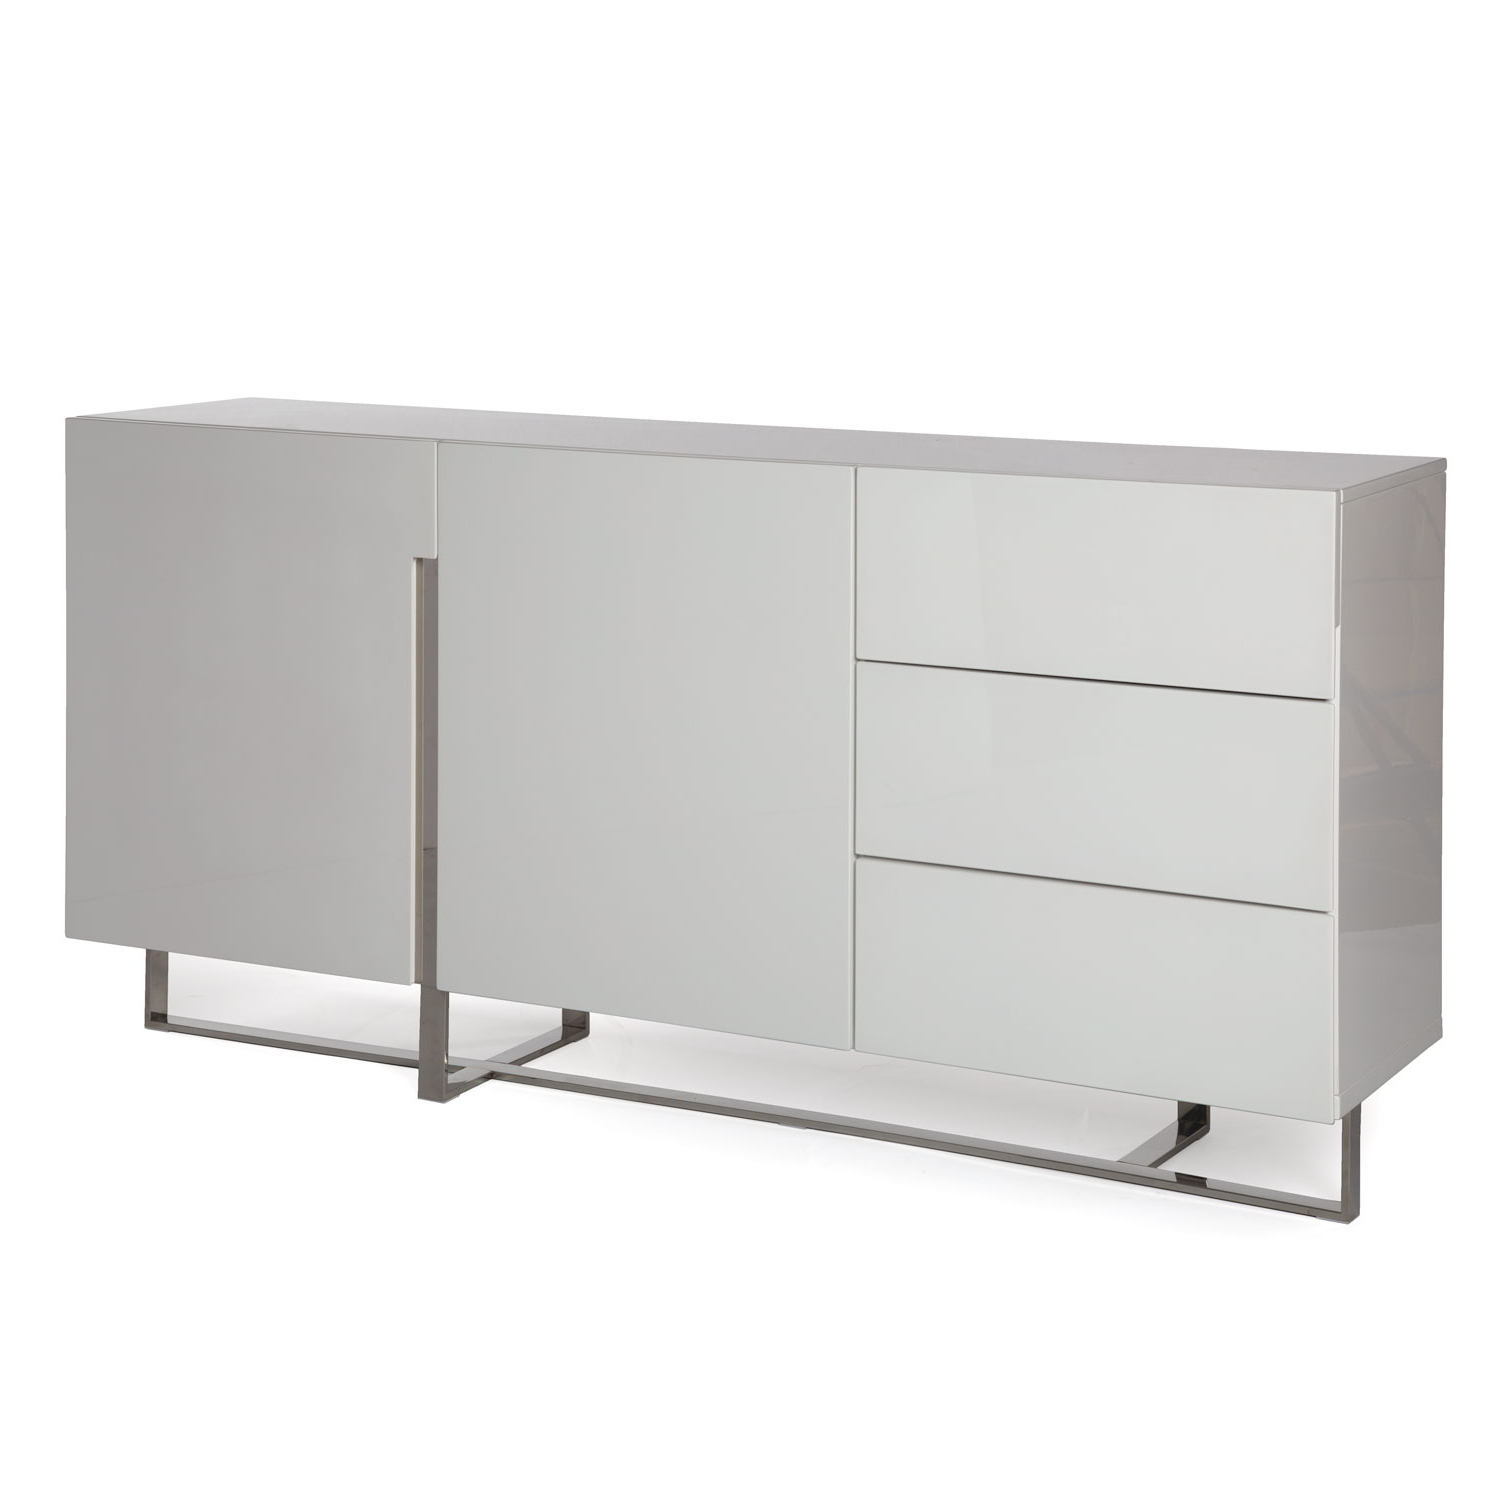 Voco | Sideboard – High Gloss White Throughout White Wood And Chrome Metal High Gloss Buffets (View 19 of 20)